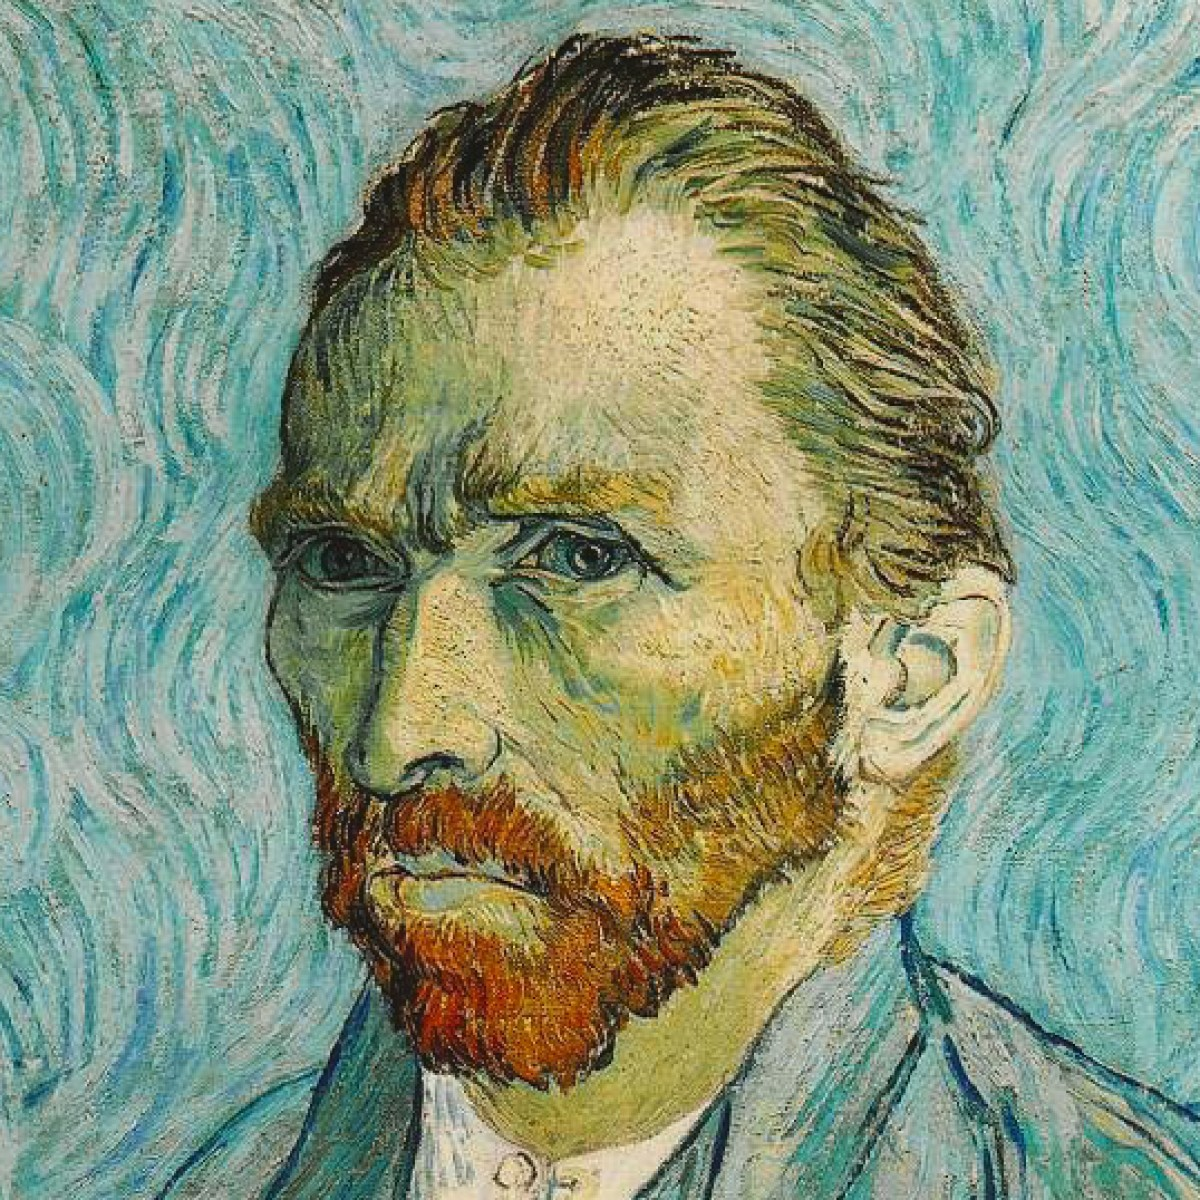 van gogh self.jpeg